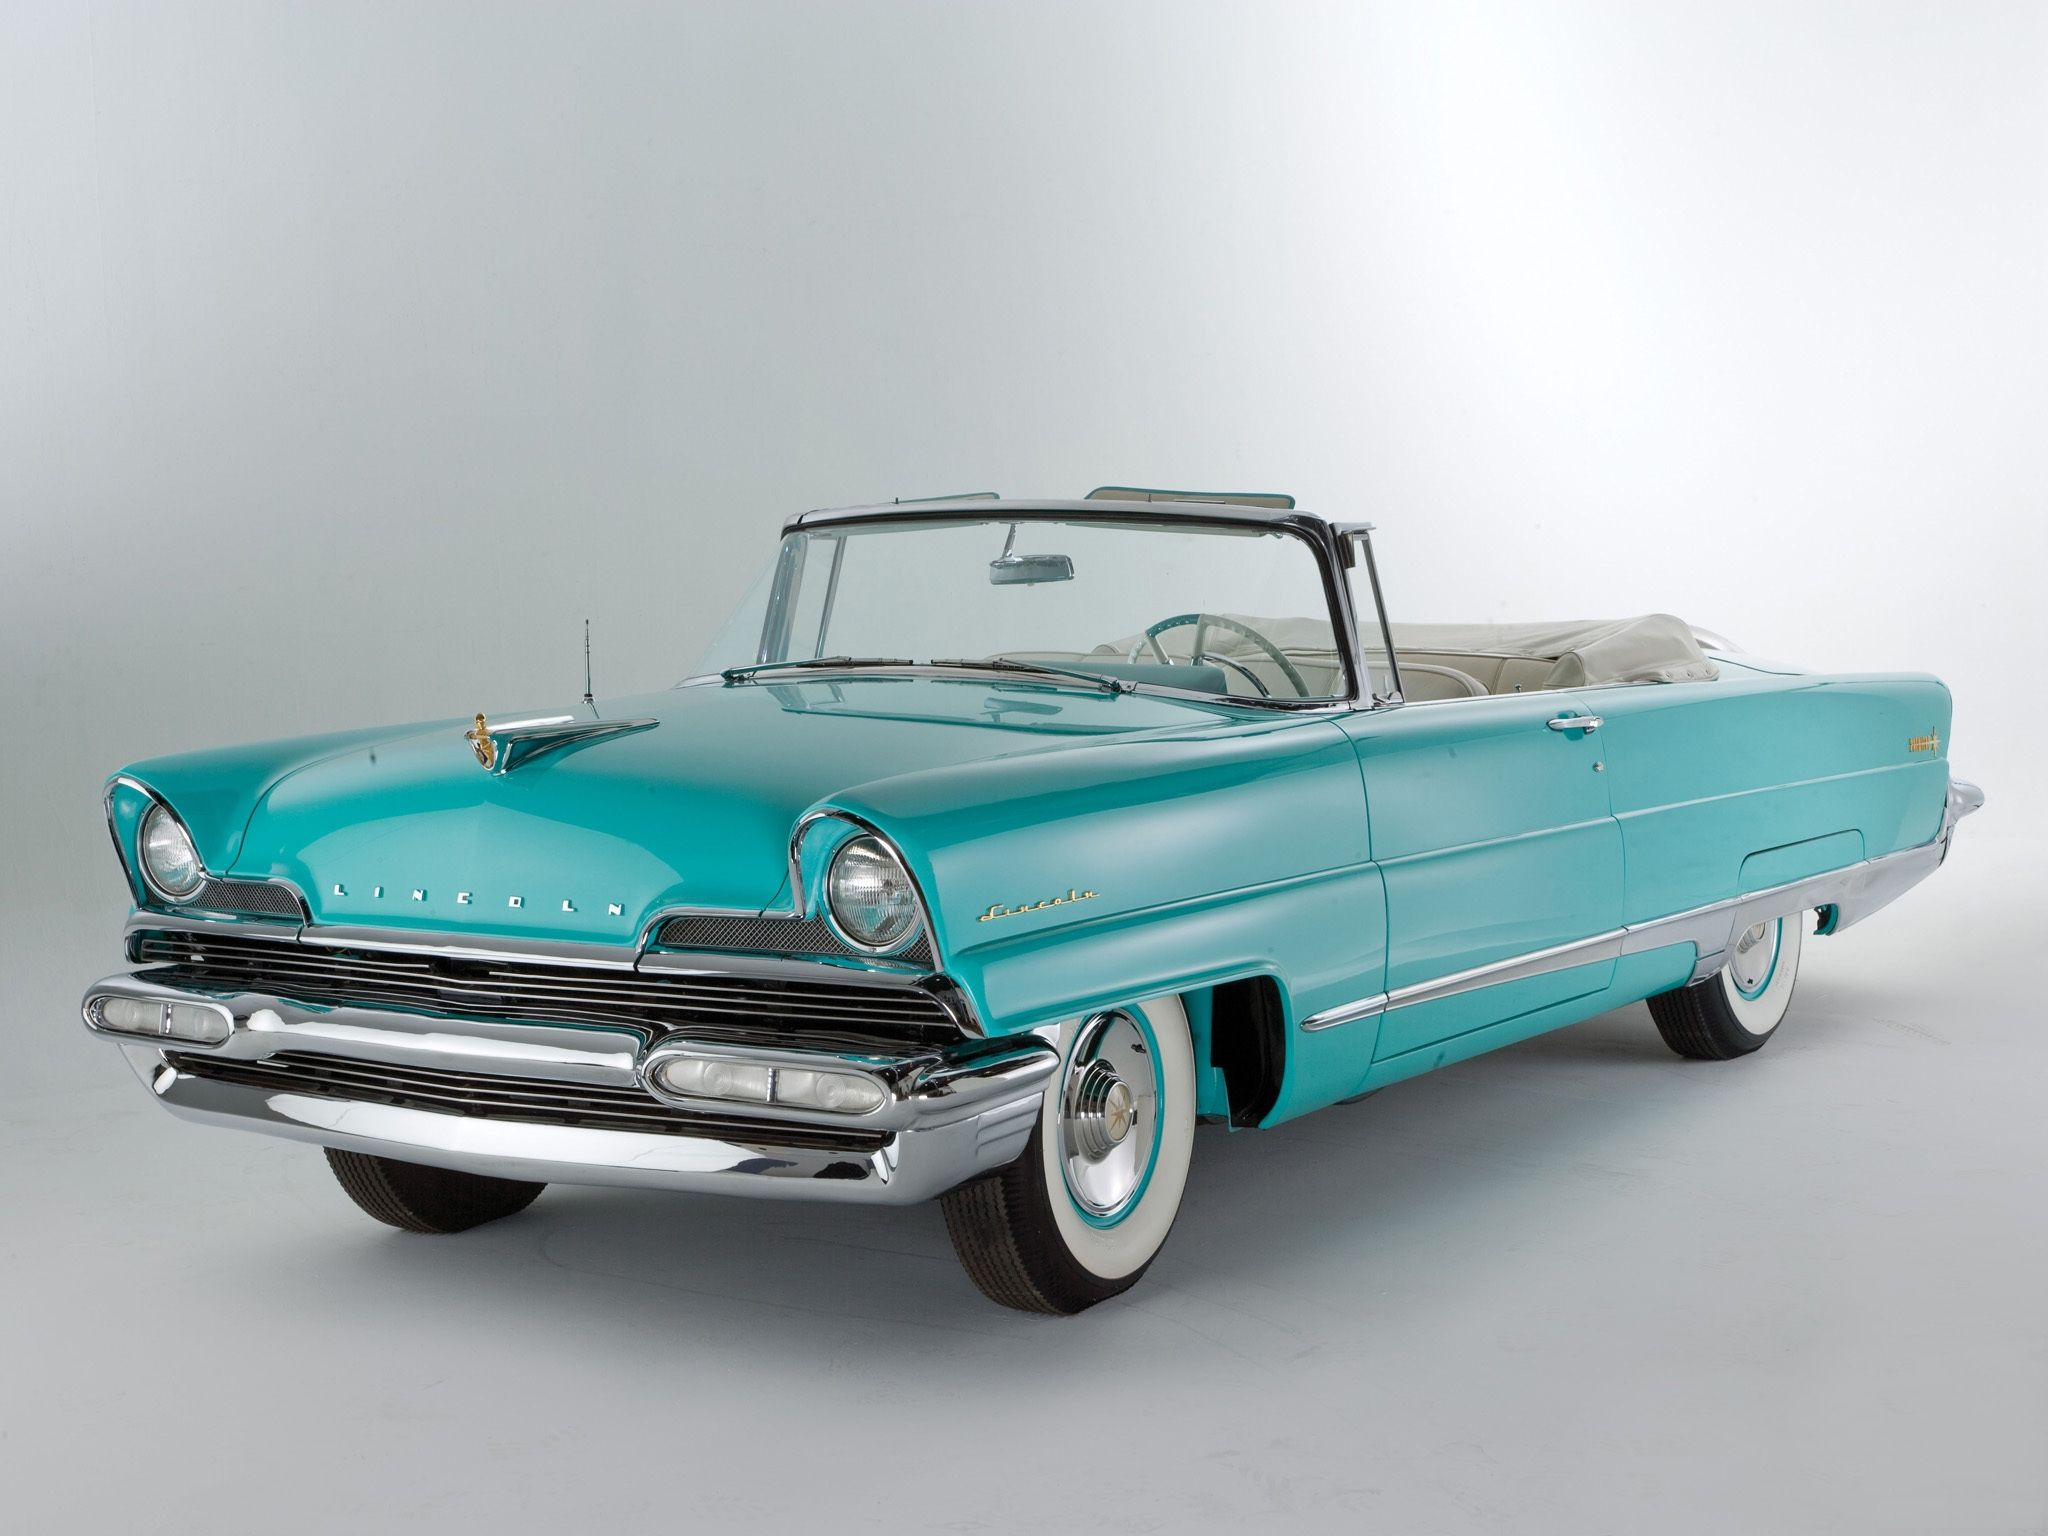 1959 lincoln continental convertible submited images pic2fly - 1956 Lincoln Premiere Convertible Retro Luxury G